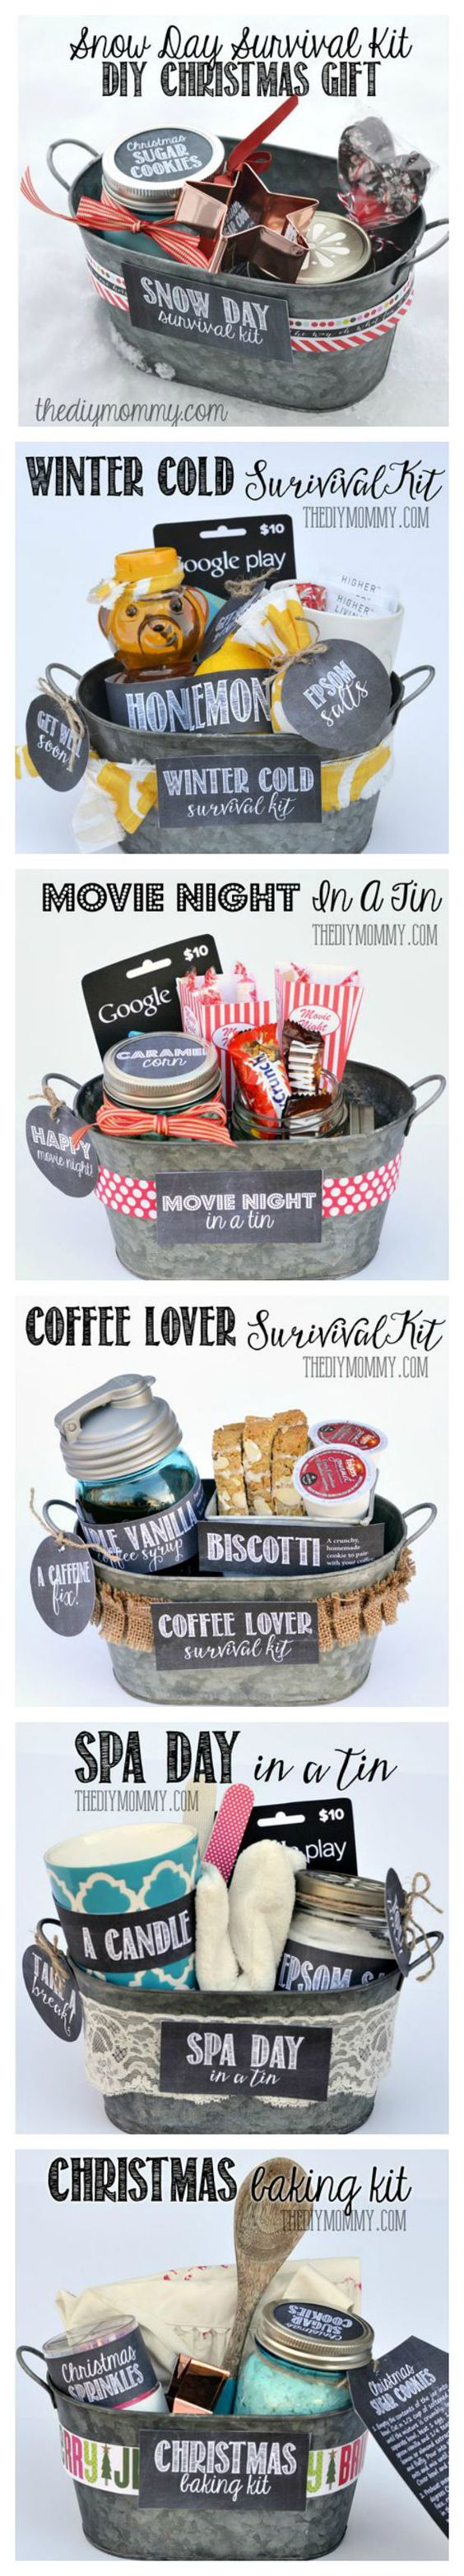 best images about darky on pinterest soaps survival kits and